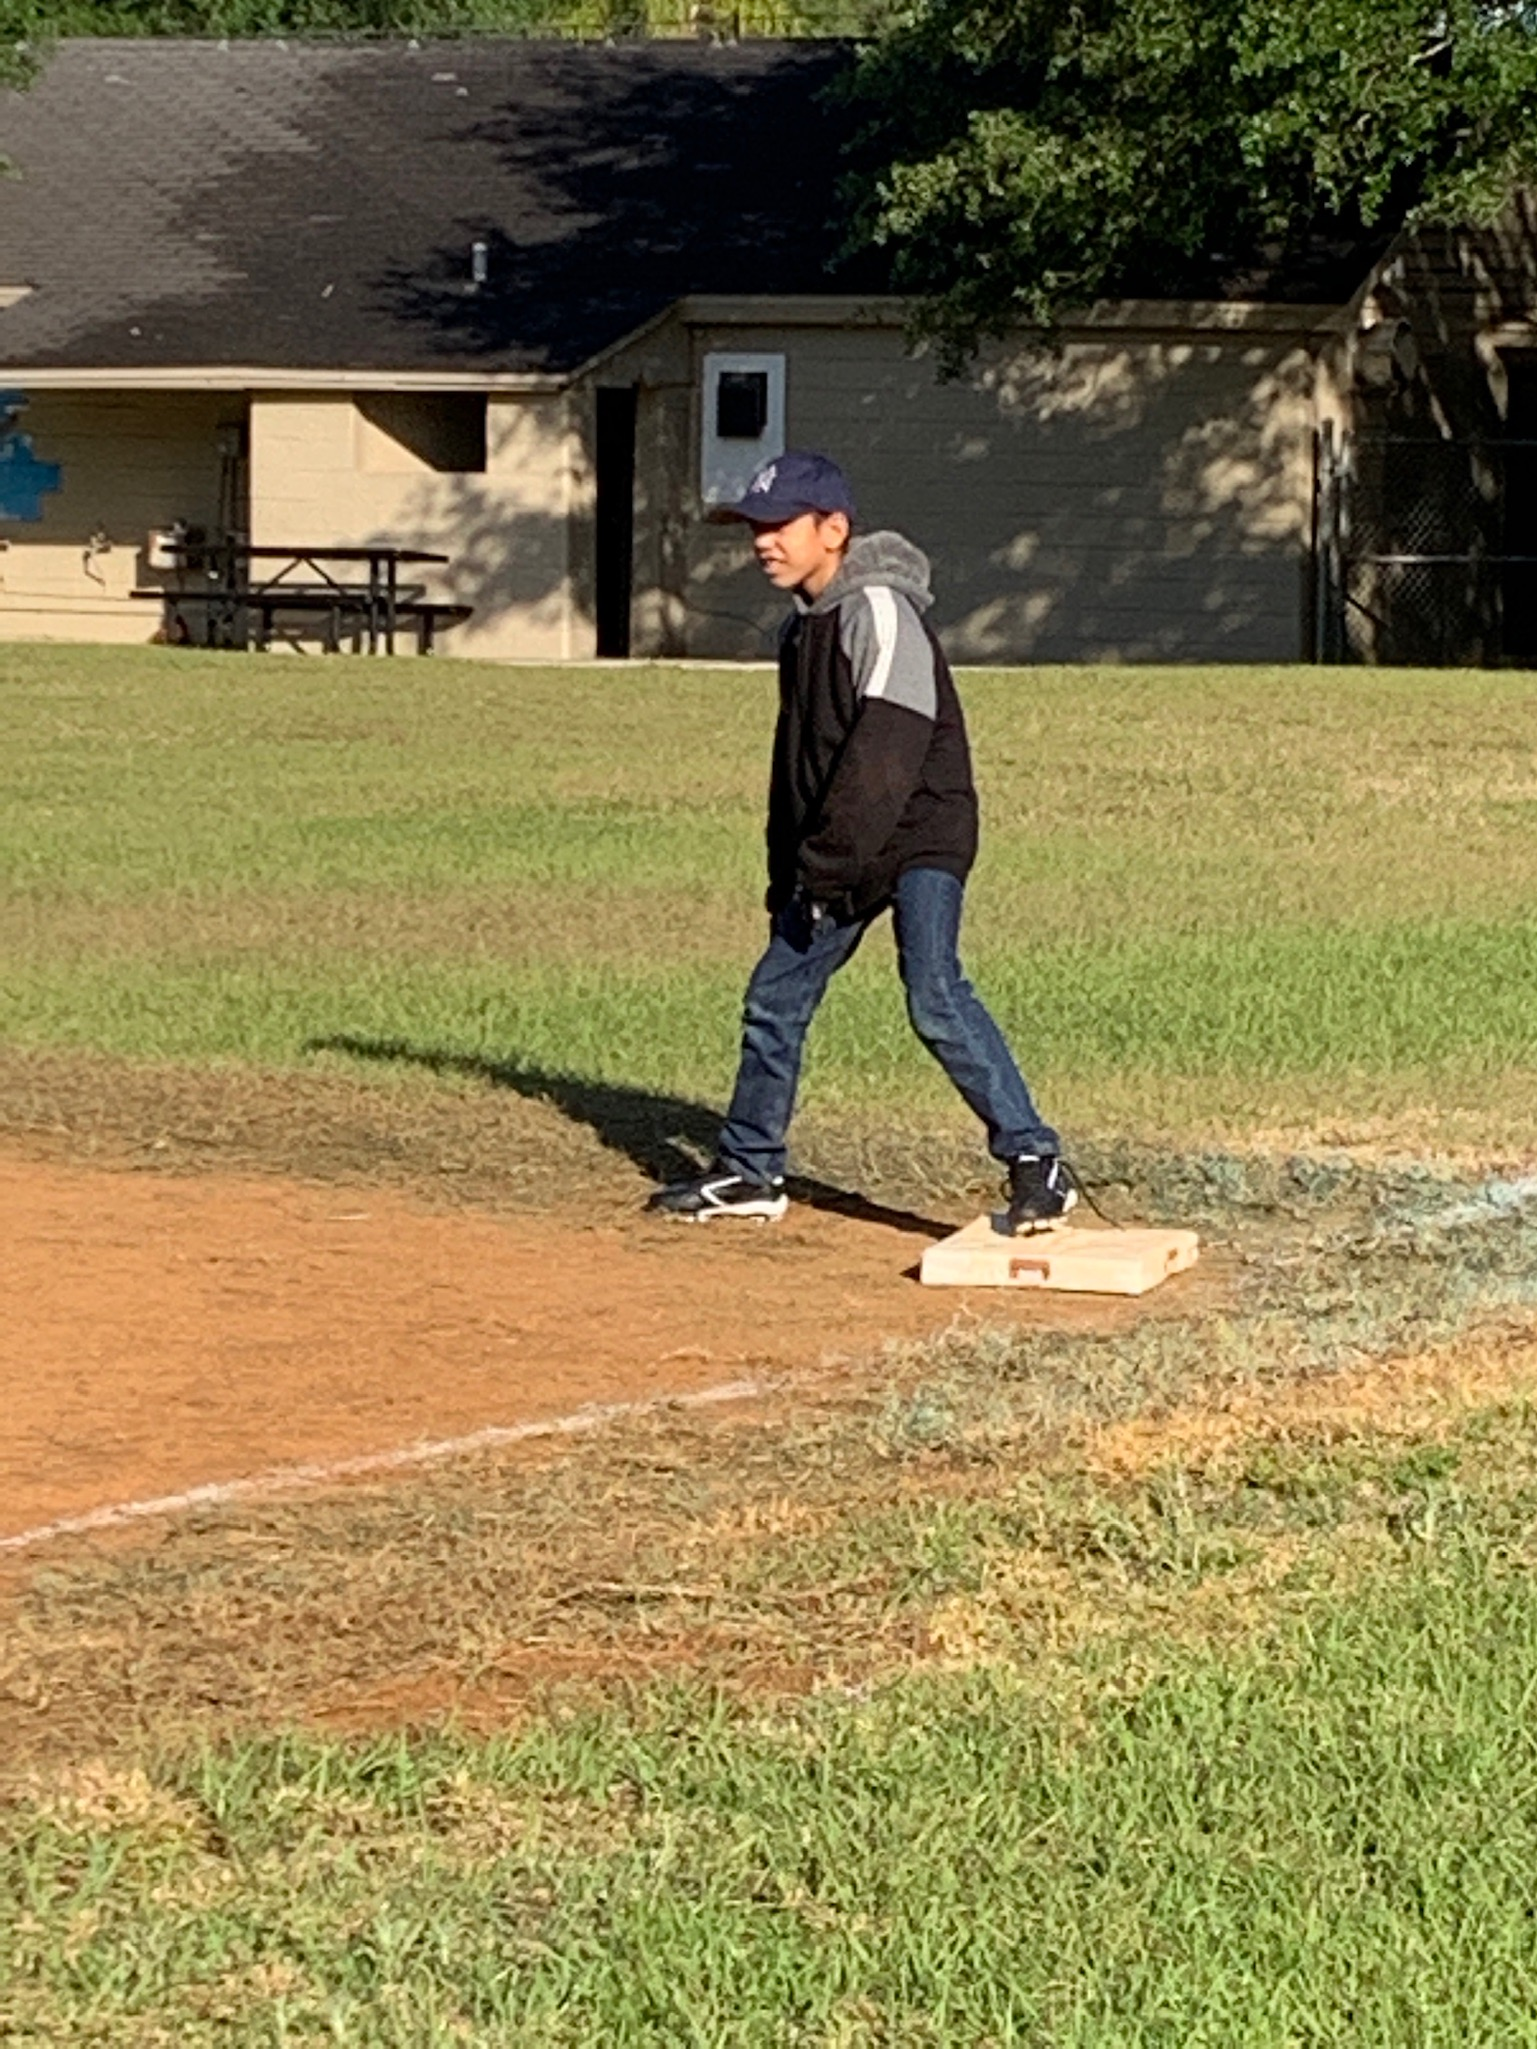 A 5th grade student on 1st base.